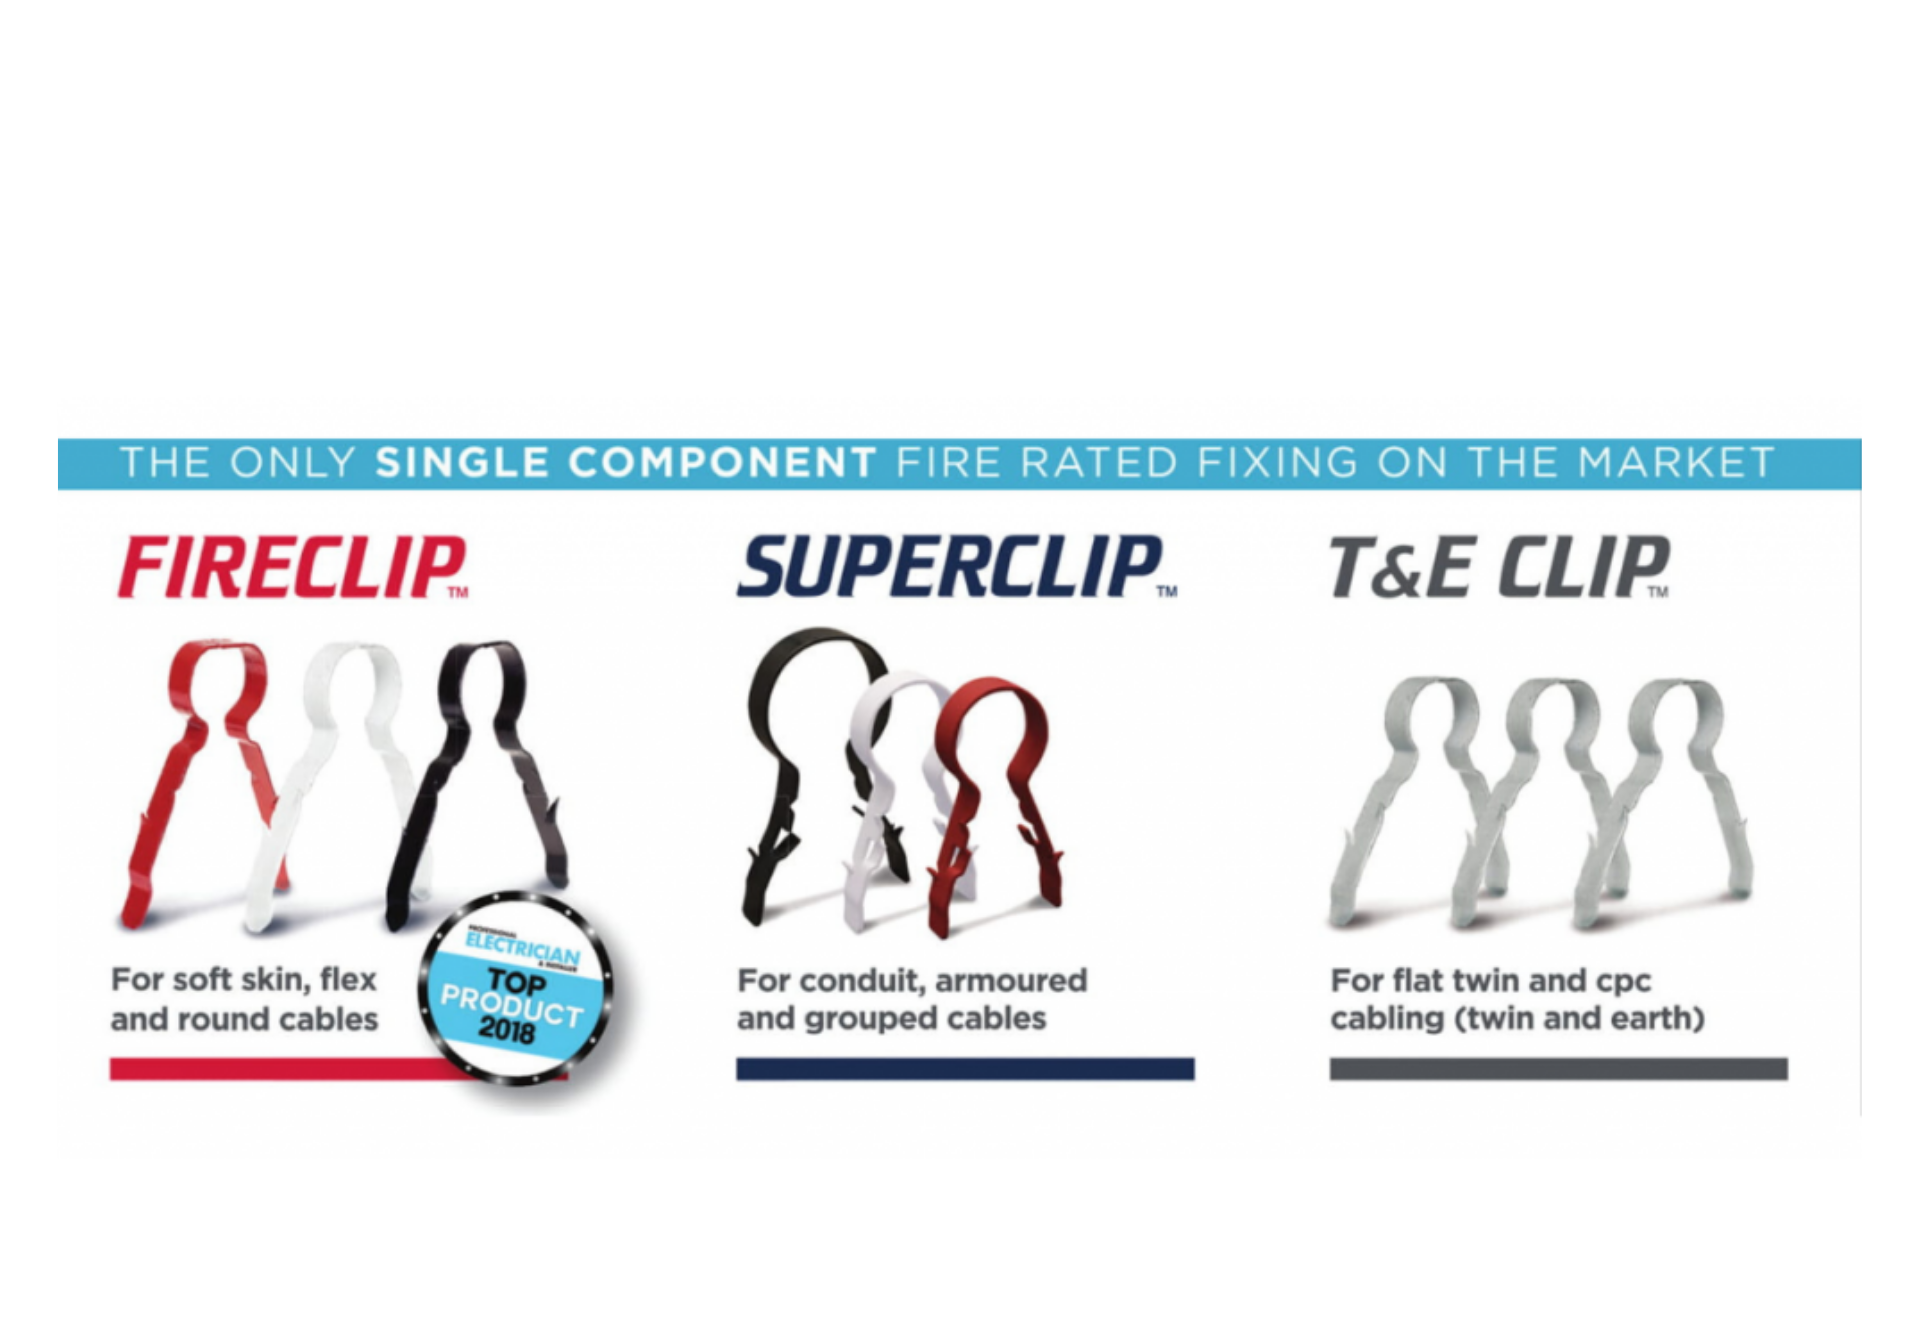 fireclip-superclip-teclip-home-page-linian-2